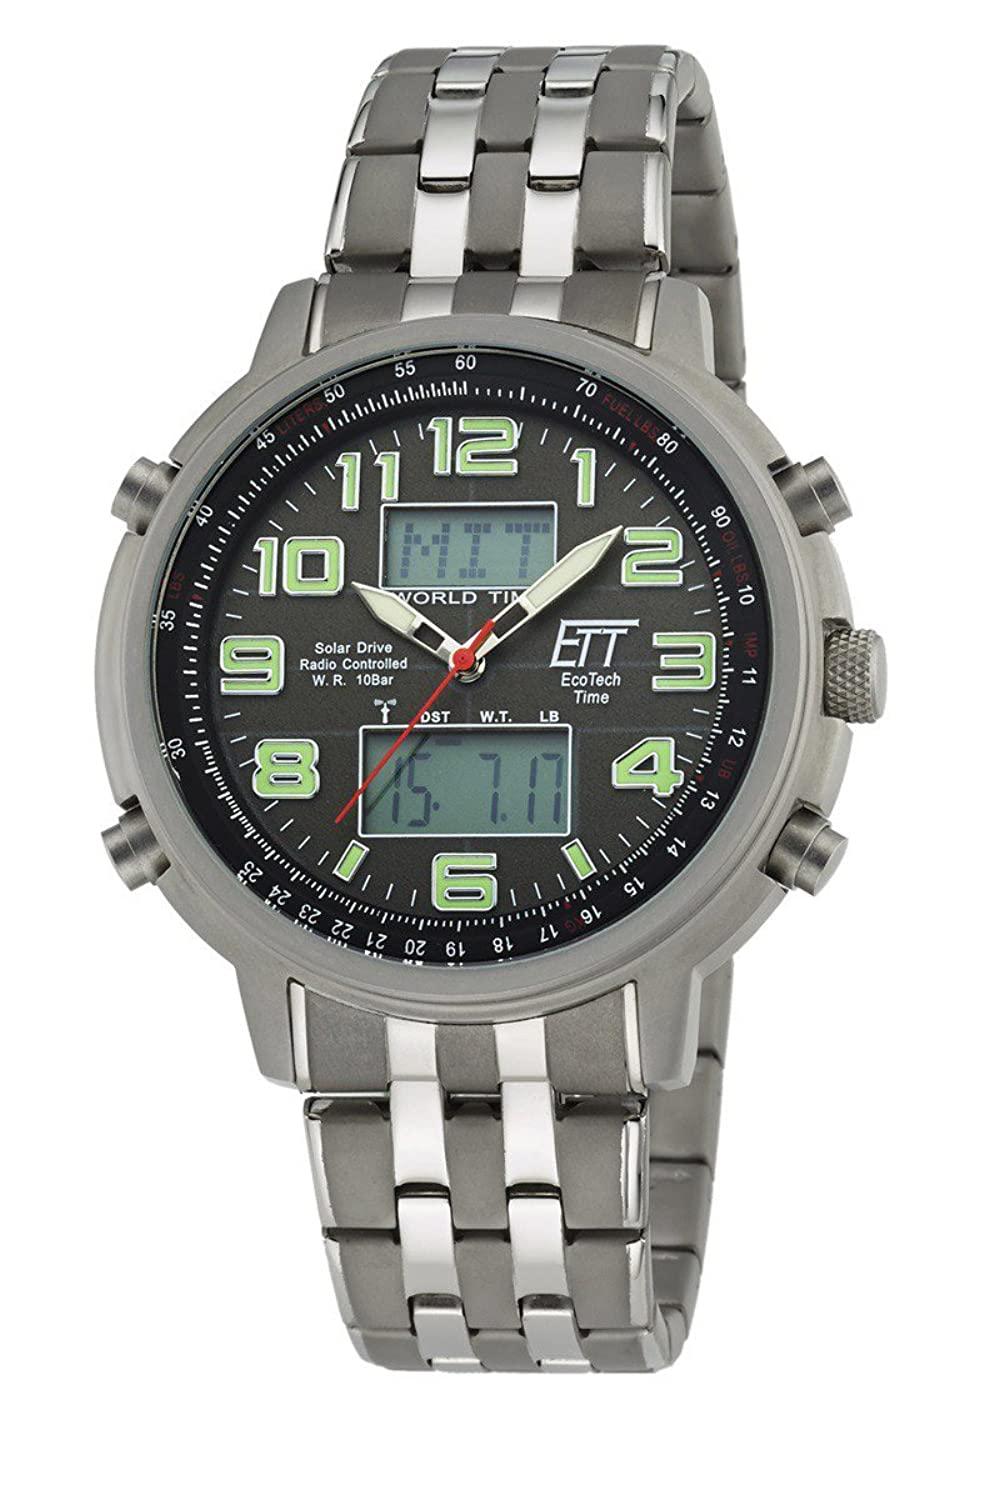 Eco Tech Time Solar Drive Funk Herrenuhr Hunter II EGS-11302-22M World Timer